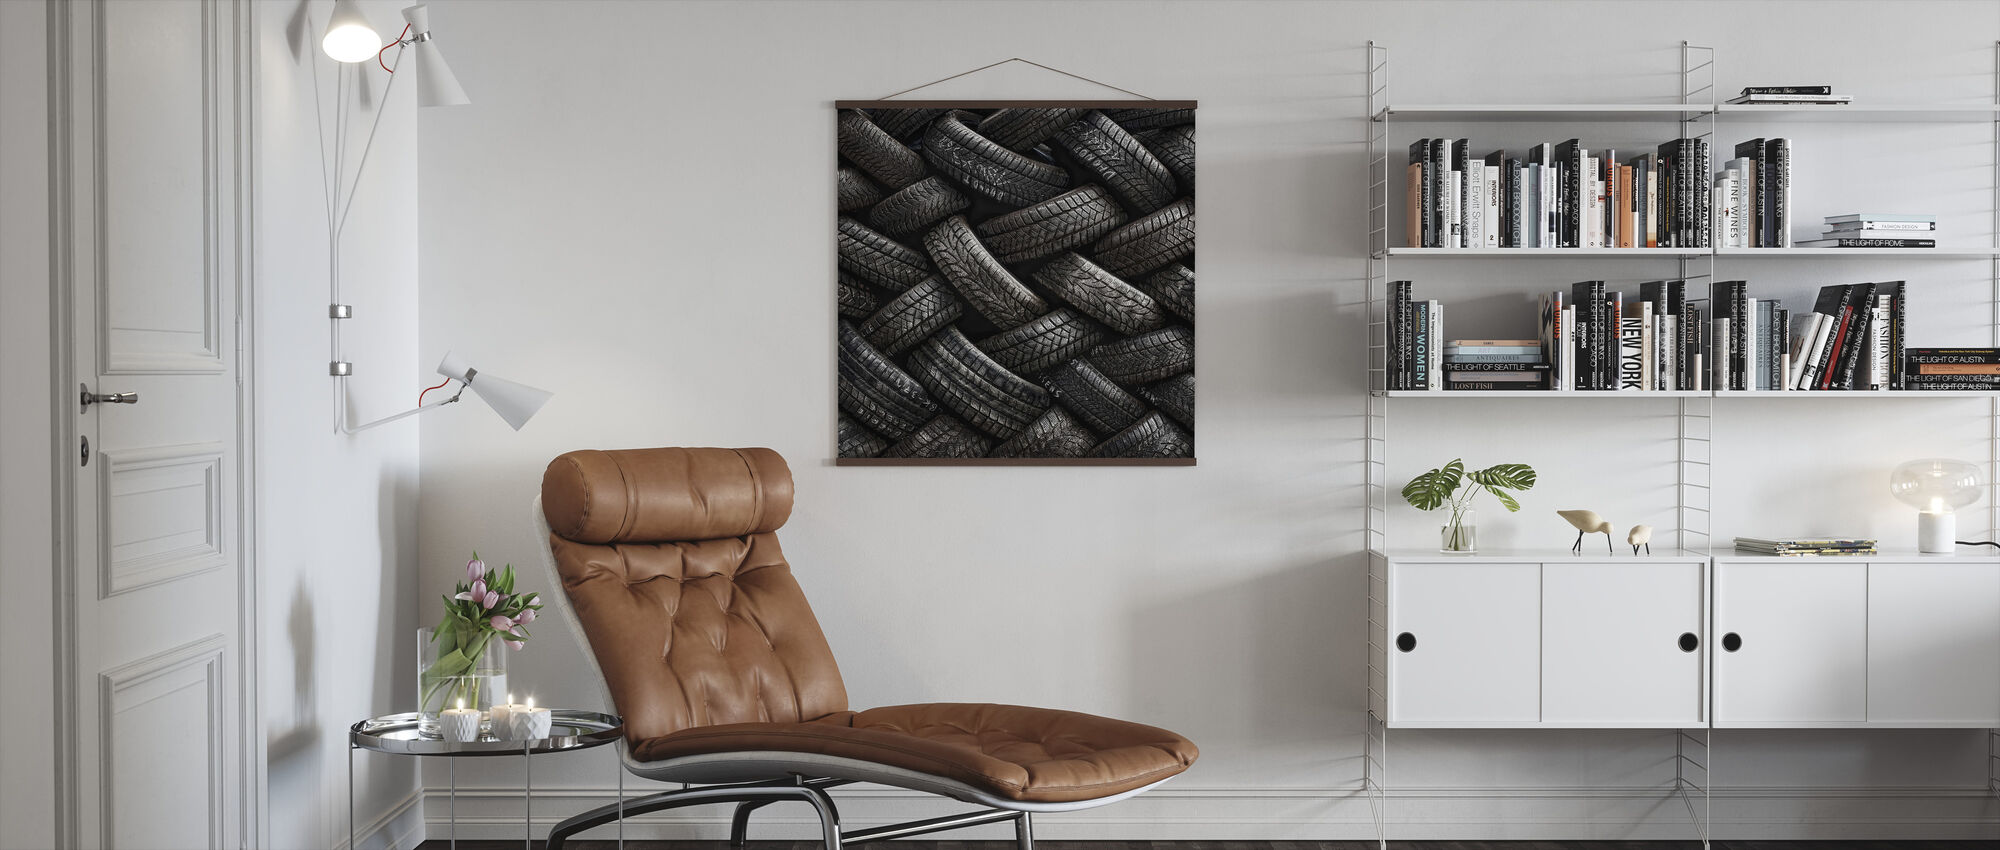 Tire Tread - Poster - Living Room